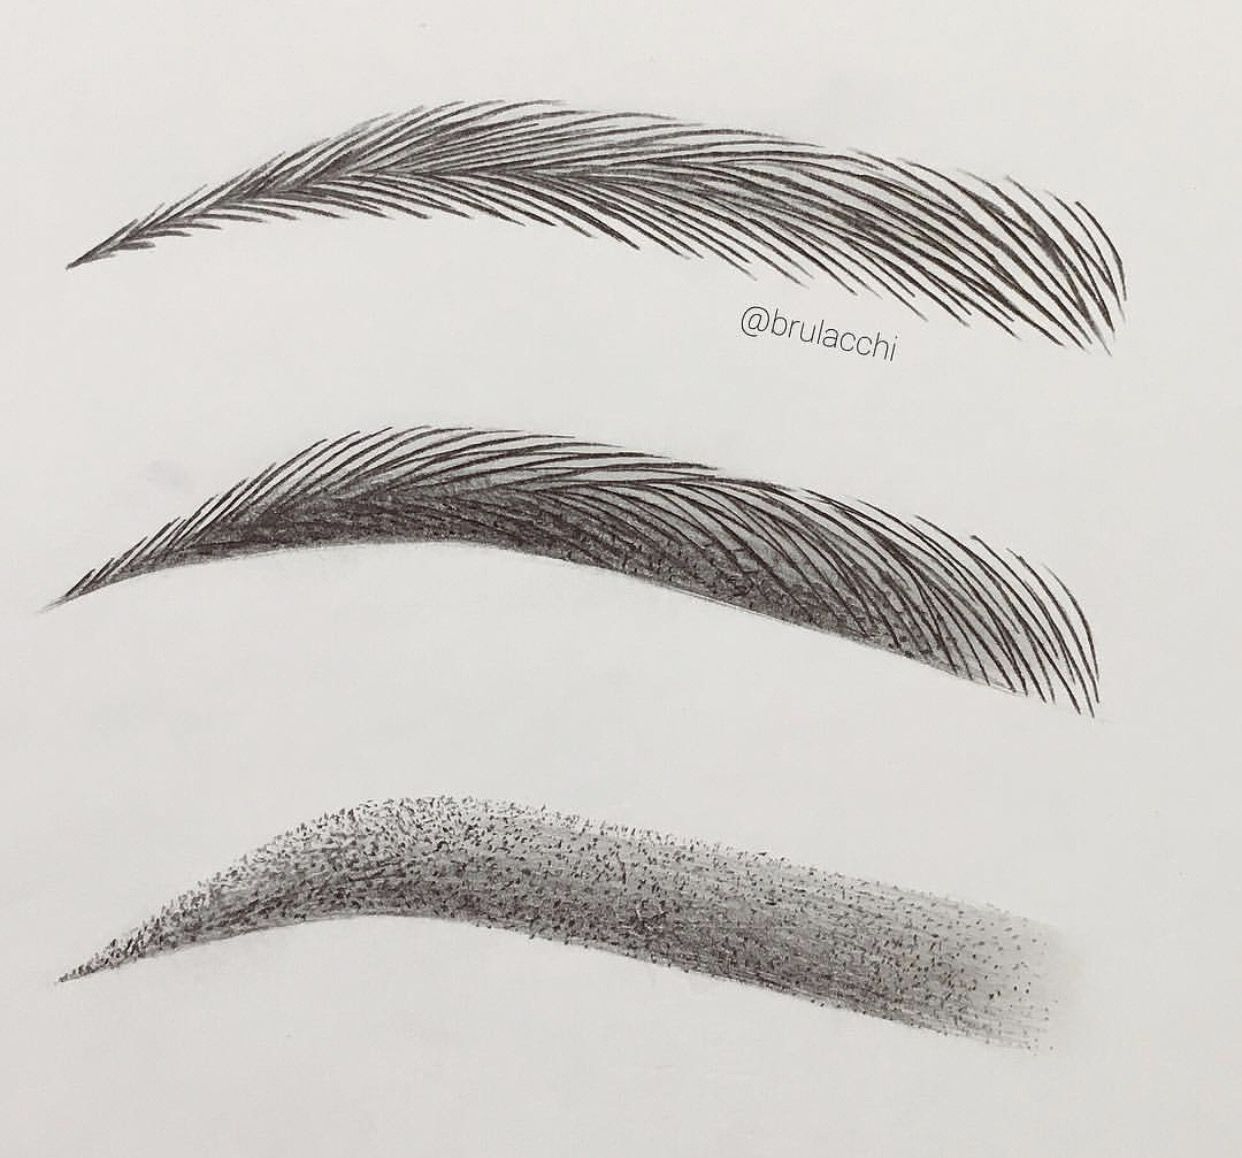 Permanent Sketch Book: Combination Of Microblading + Shading